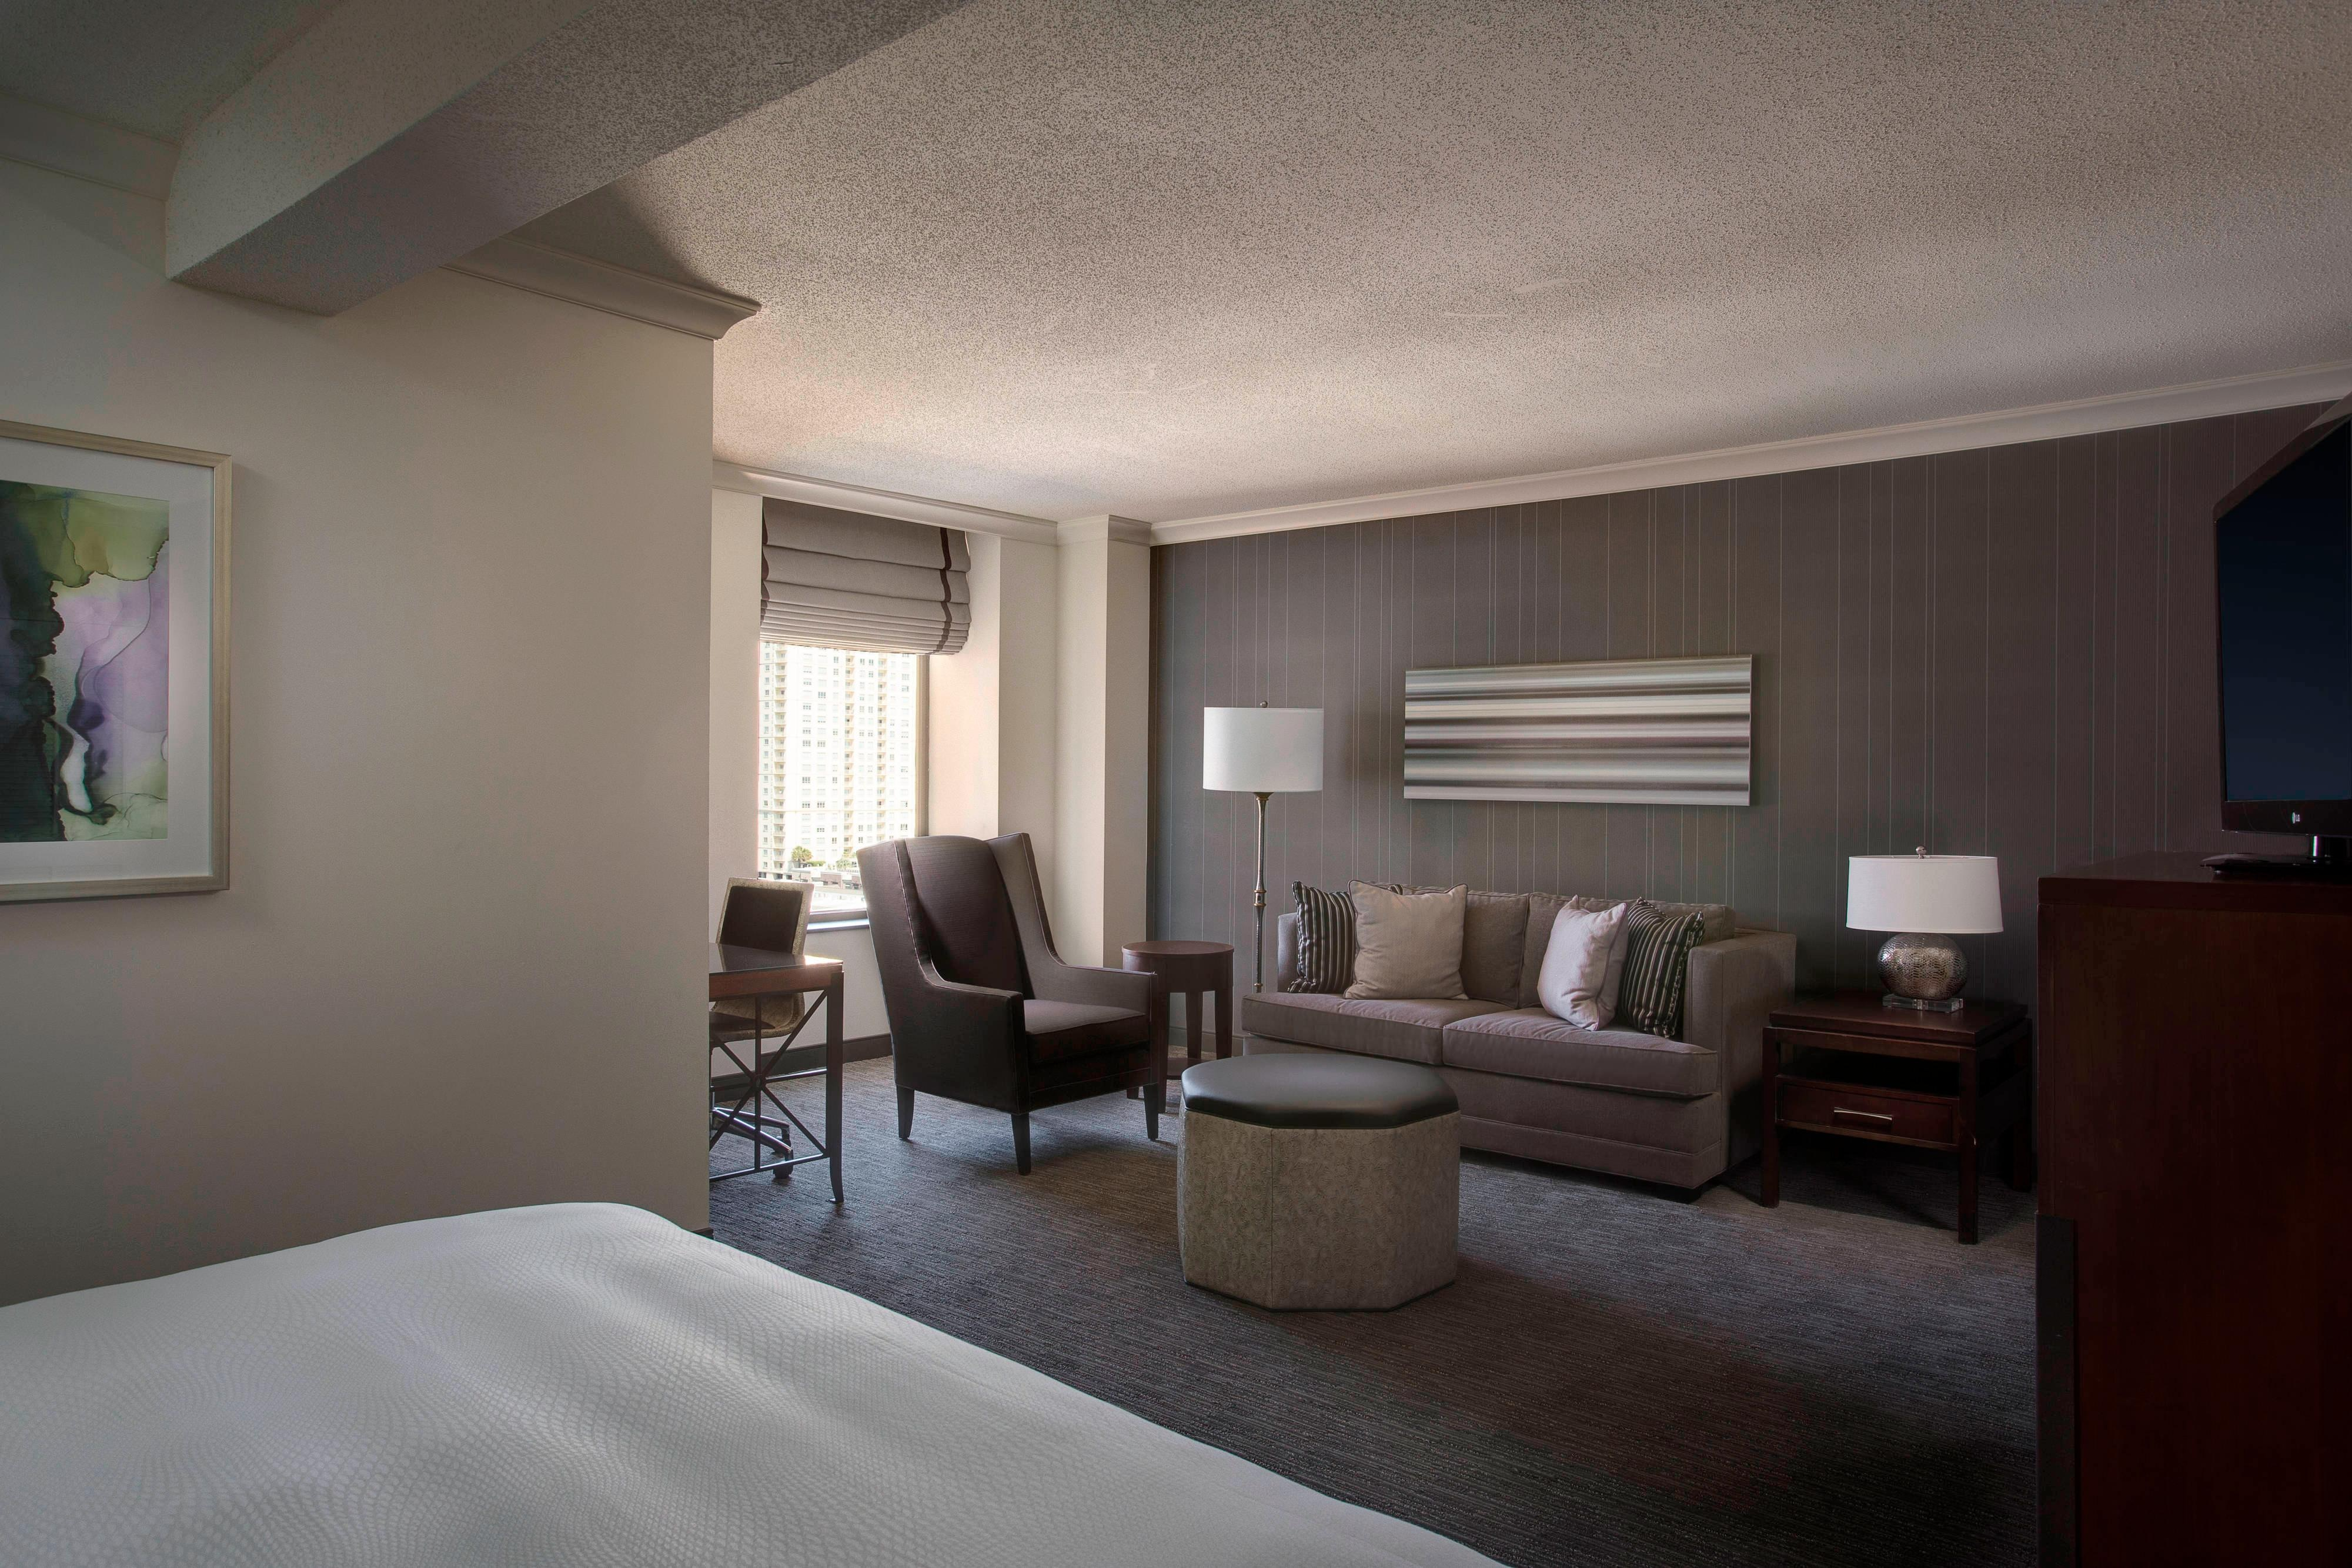 Suites de hotel en Houston